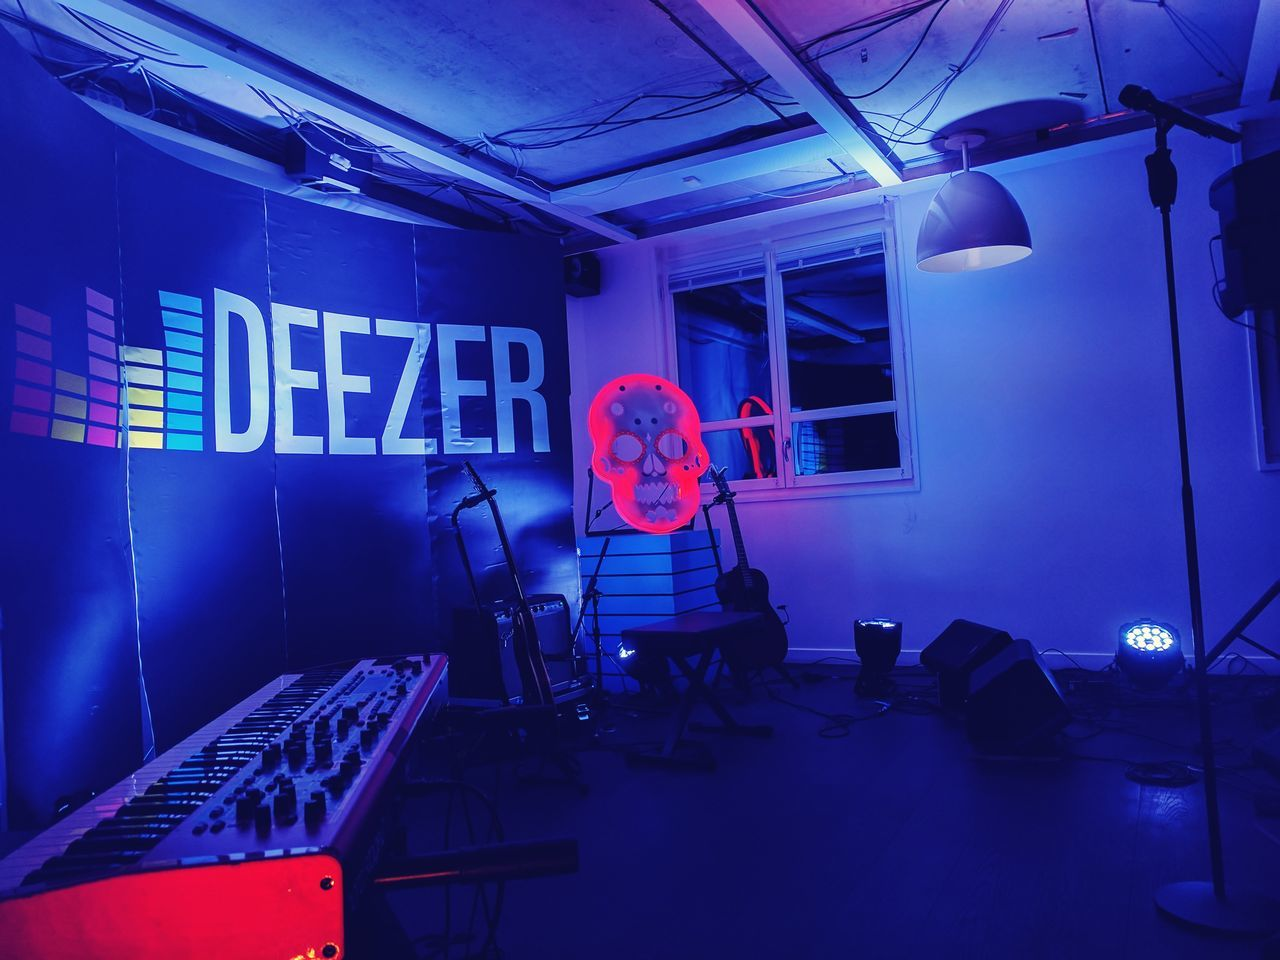 Concert Deezer Week4 52WeekChallenge Concert Photography WorkLife DeezerLife Stage - Performance Space No People Indoors  Illuminated Neon Neon Lights Private Concert Night Shot 52 Week Challenge 52weeksplan 52frames 52 Weeks